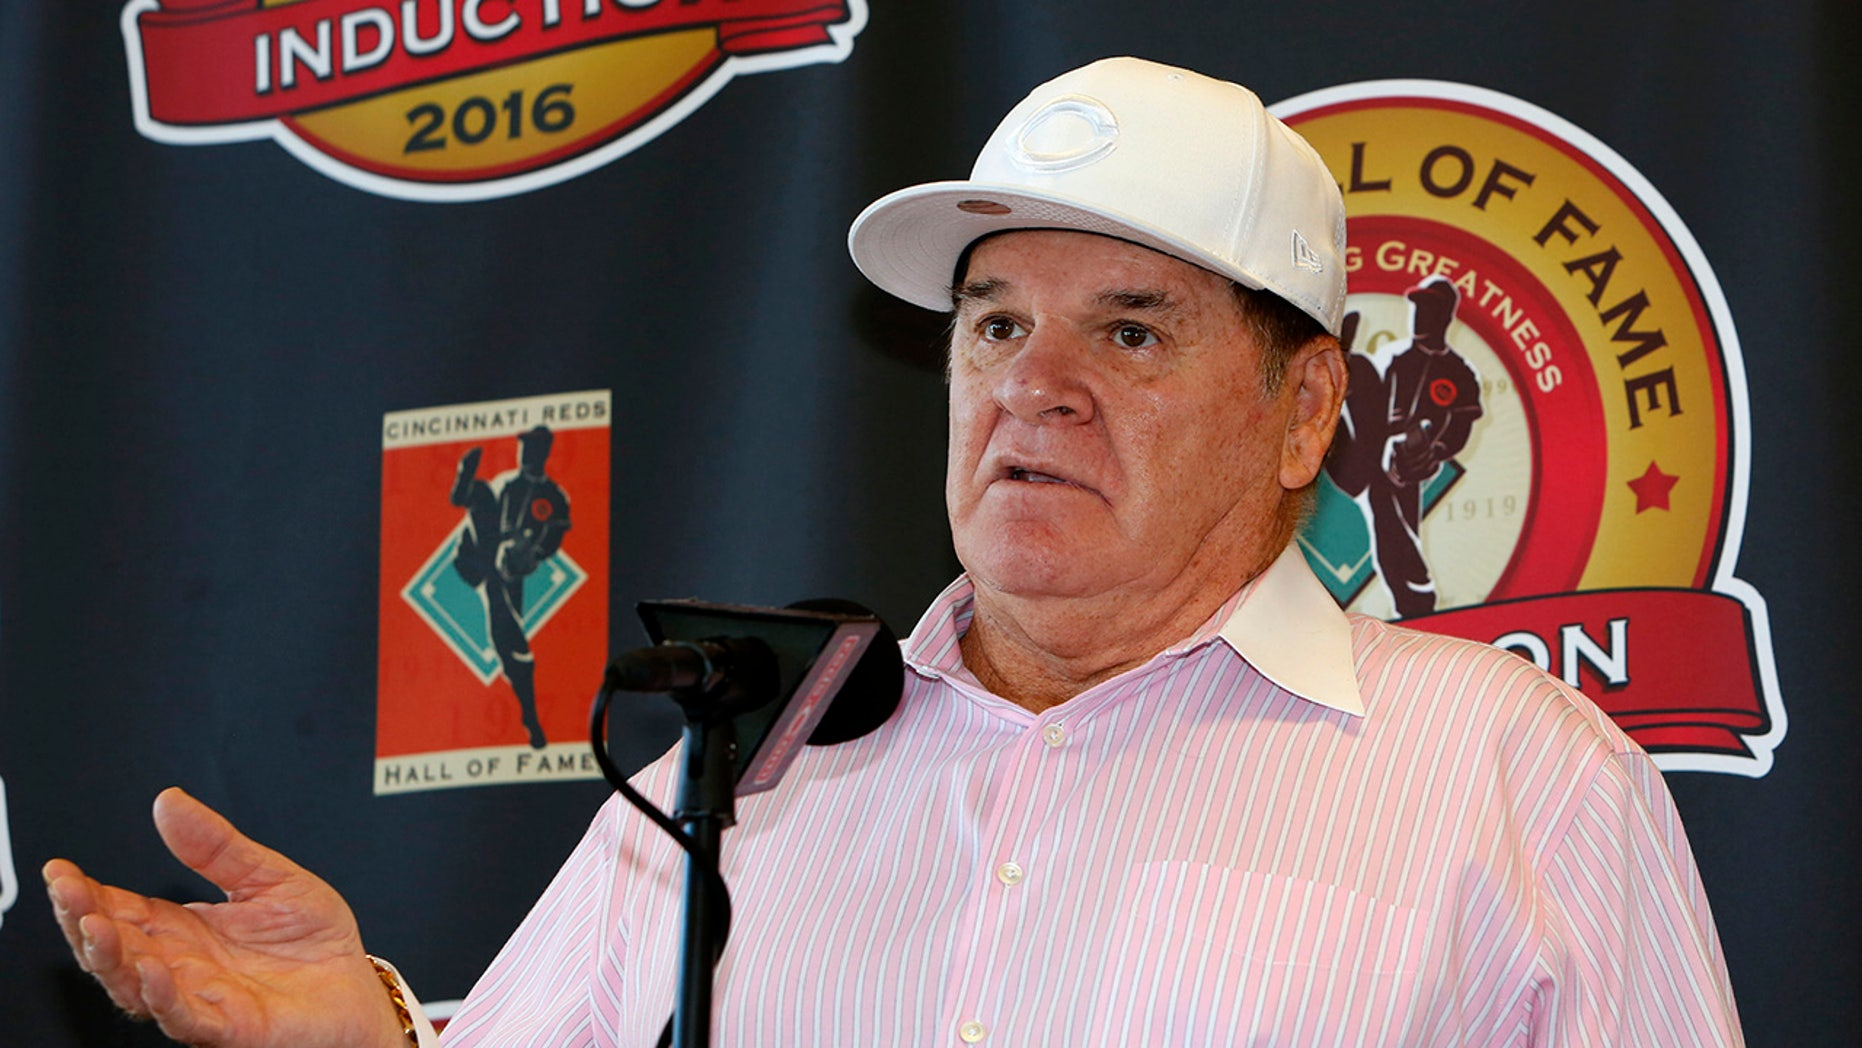 Pete Rose is accused of gambling thousands of dollars.